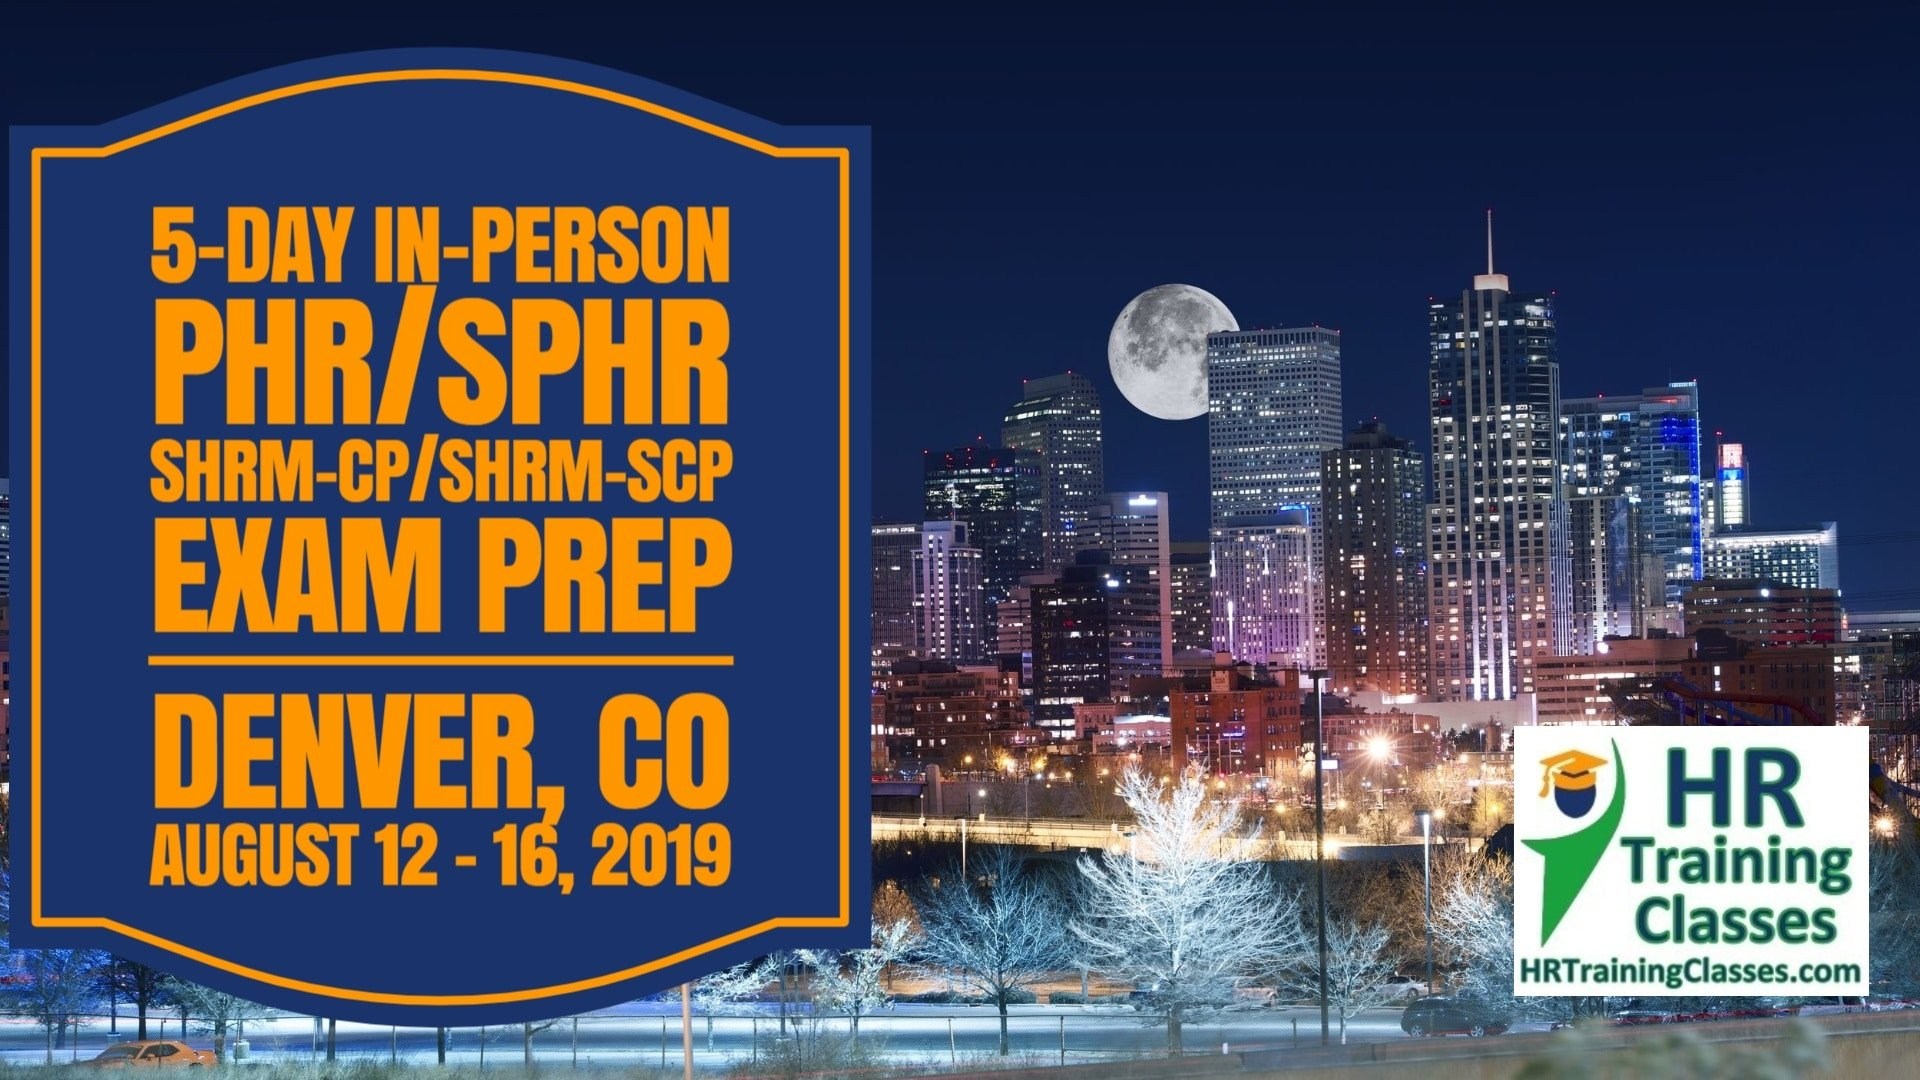 5-Day PHR, SPHR, SHRM-CP and SHRM-SCP Exam Prep Boot Camp in Denver, CO August 12 - 16, 2019